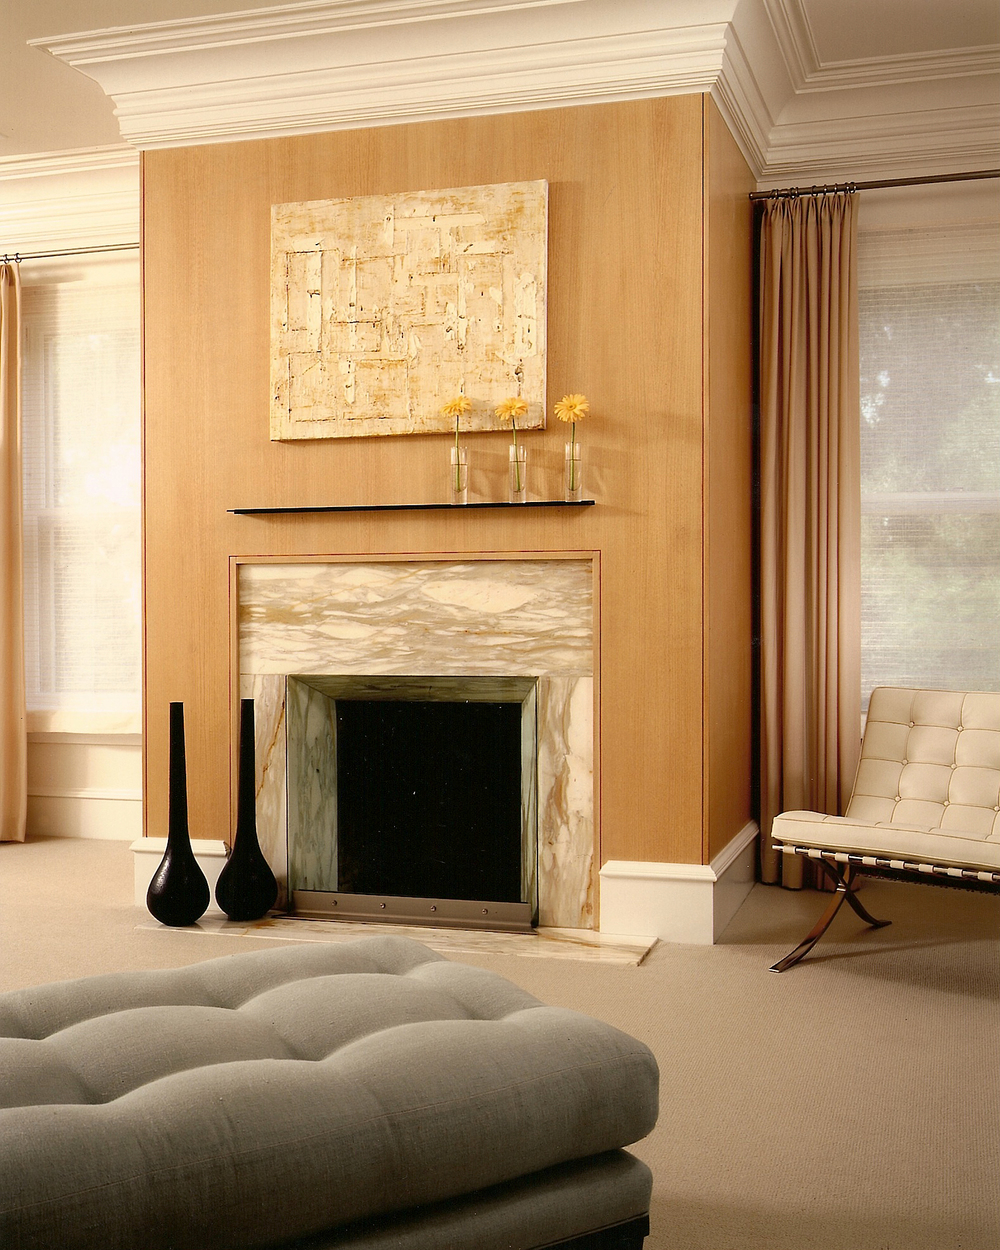 Orleans - master bedroom fireplace.jpg